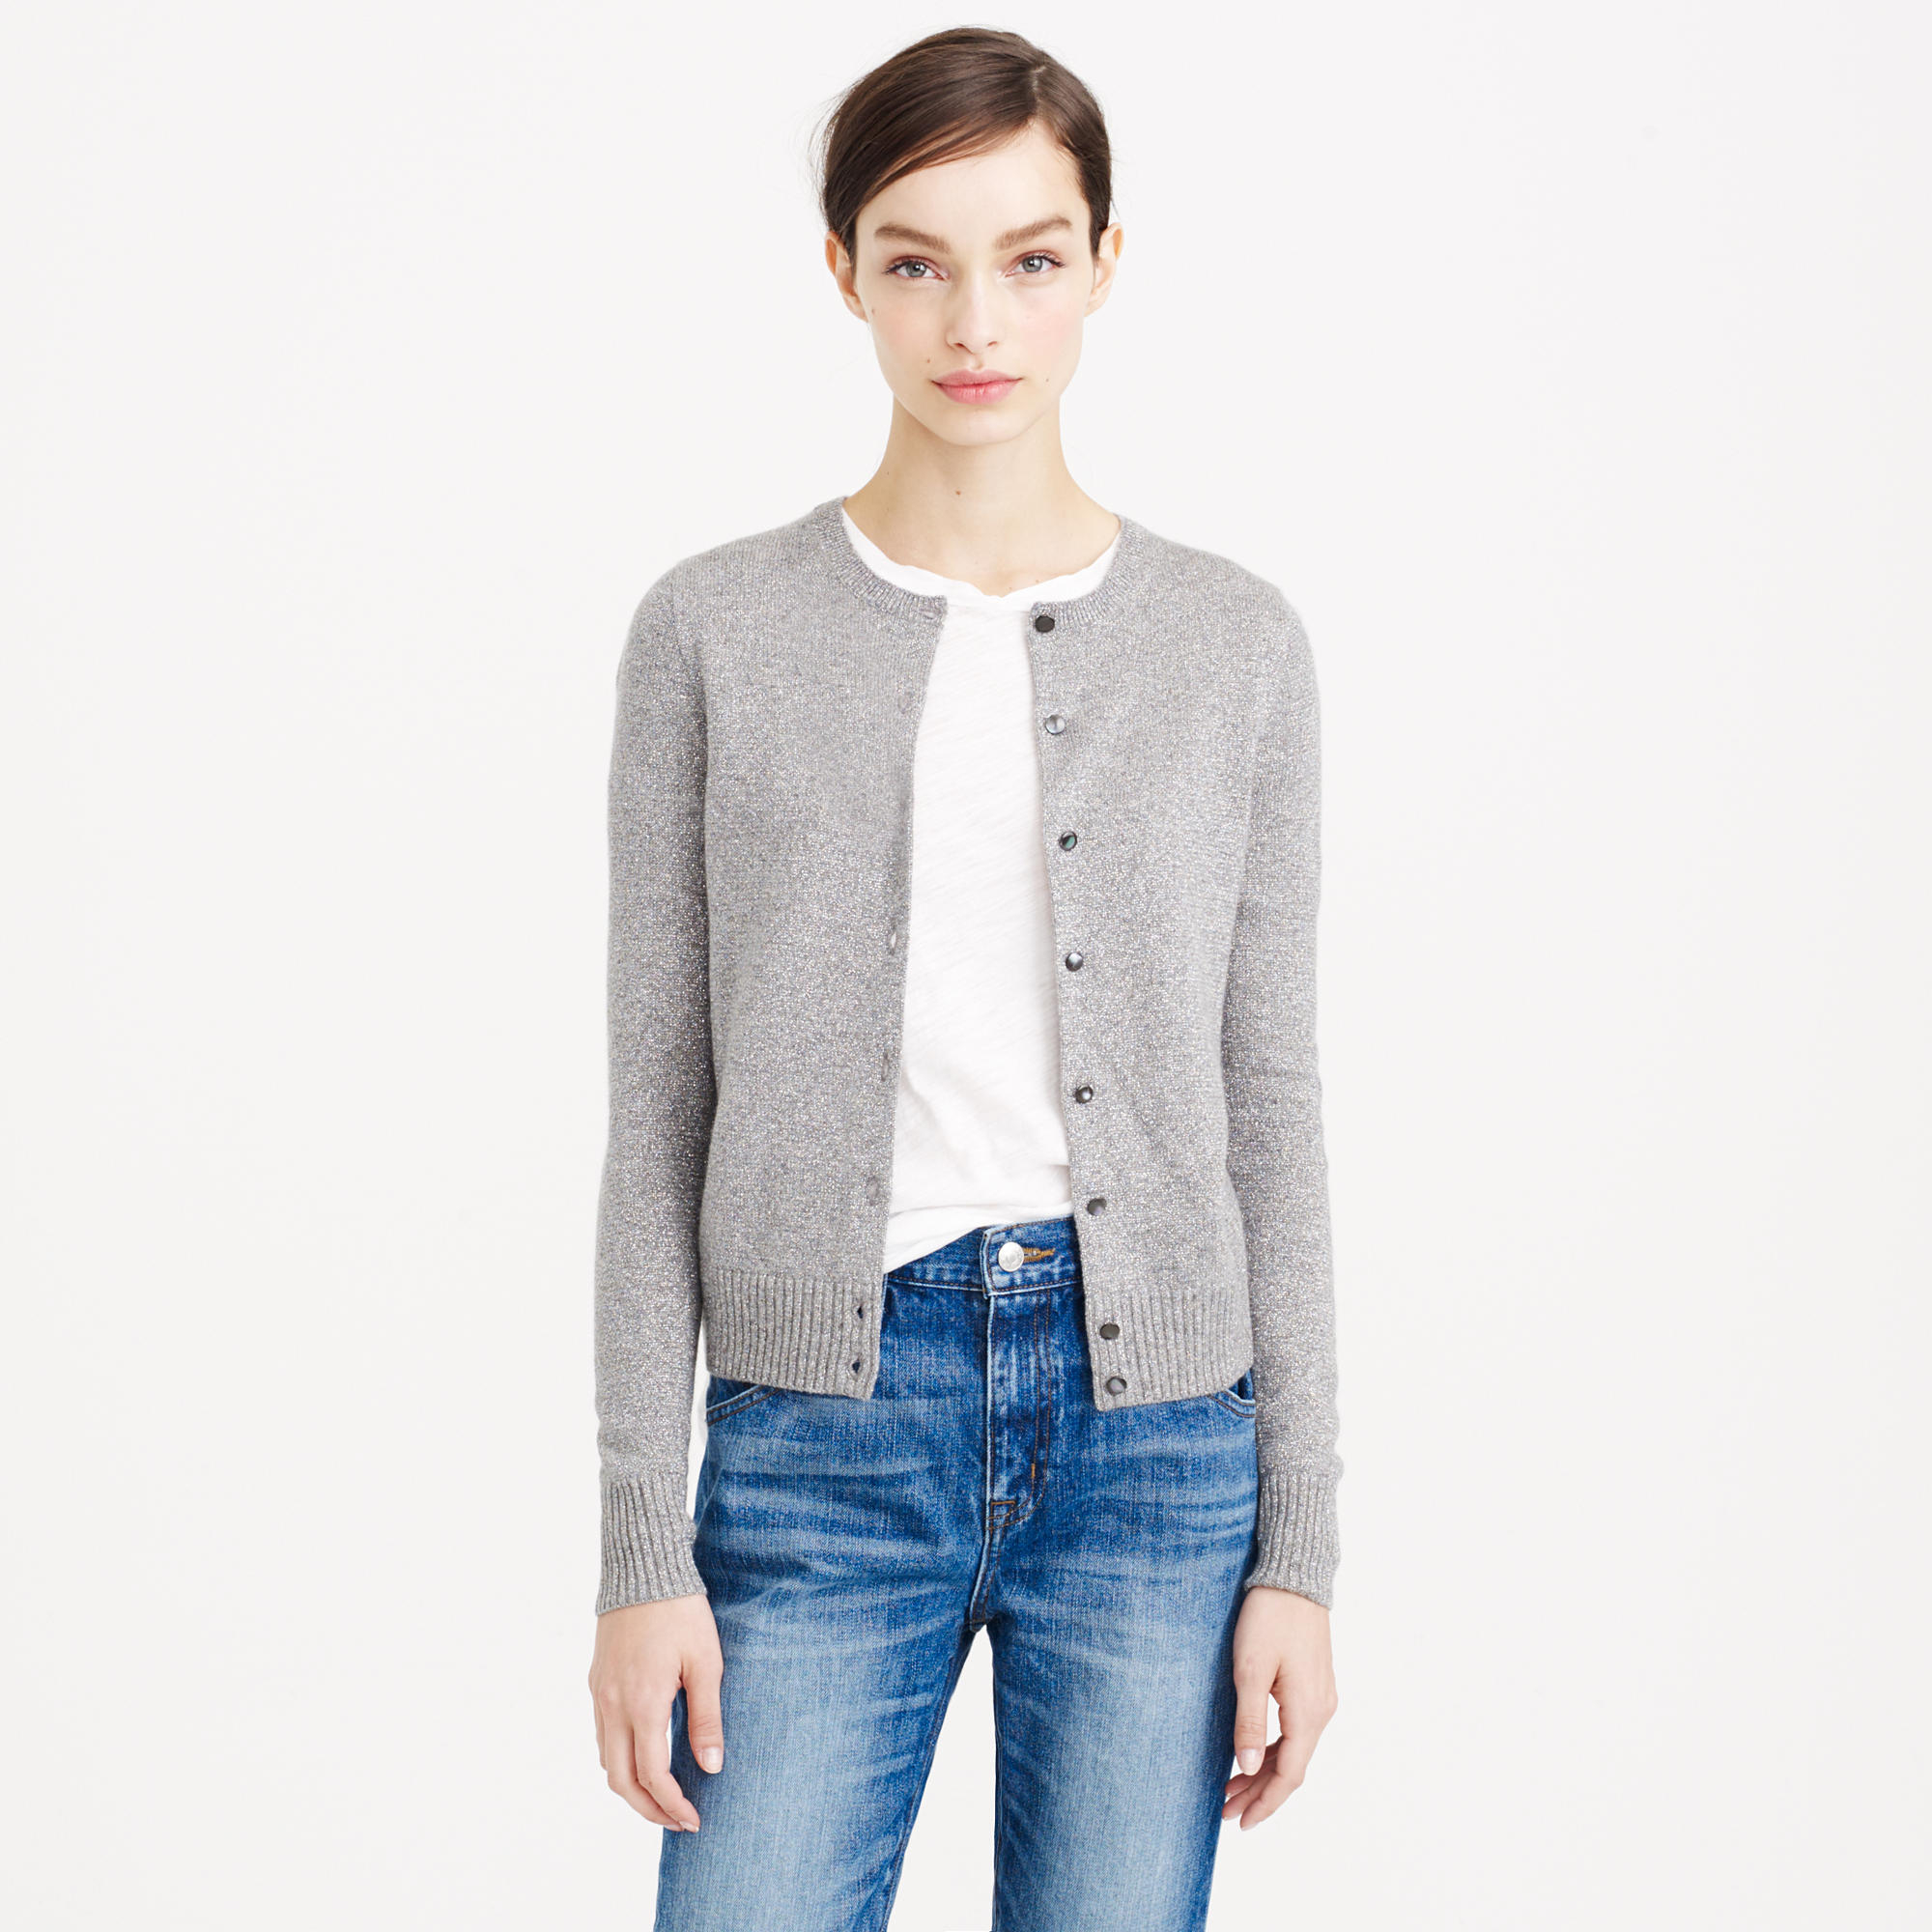 J.crew Collection Cashmere Sparkle Cardigan Sweater in Gray | Lyst